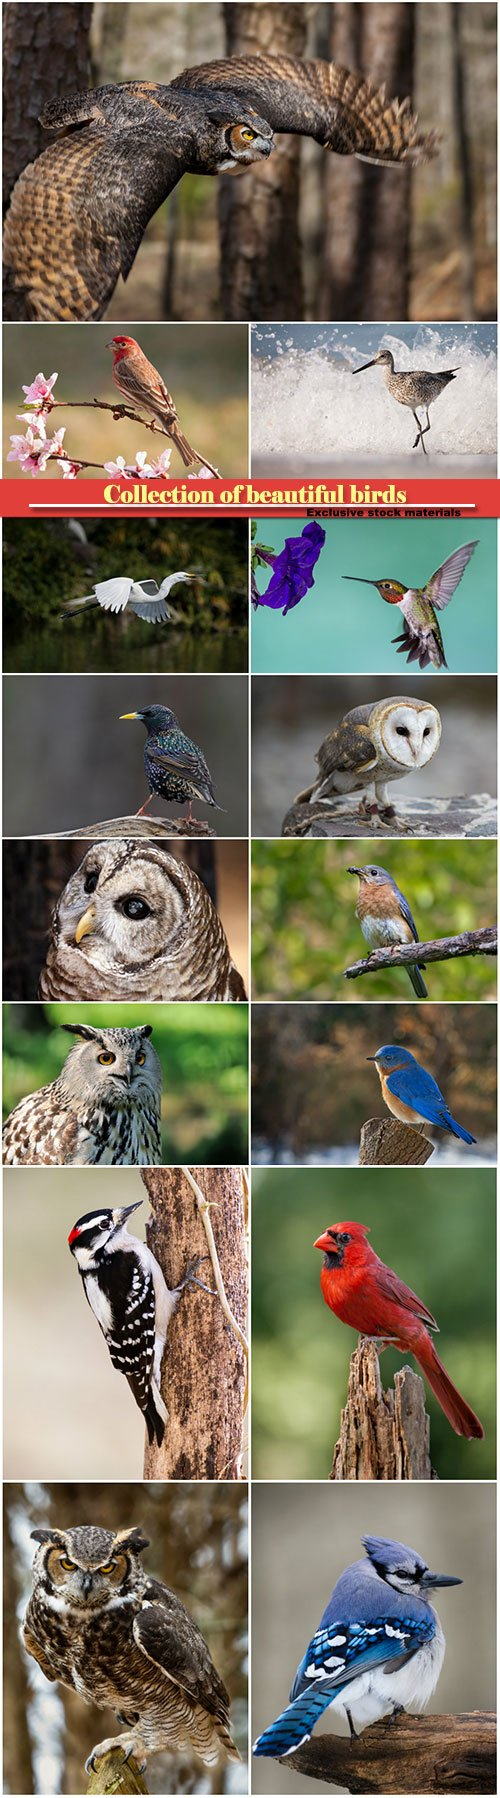 Collection of beautiful birds